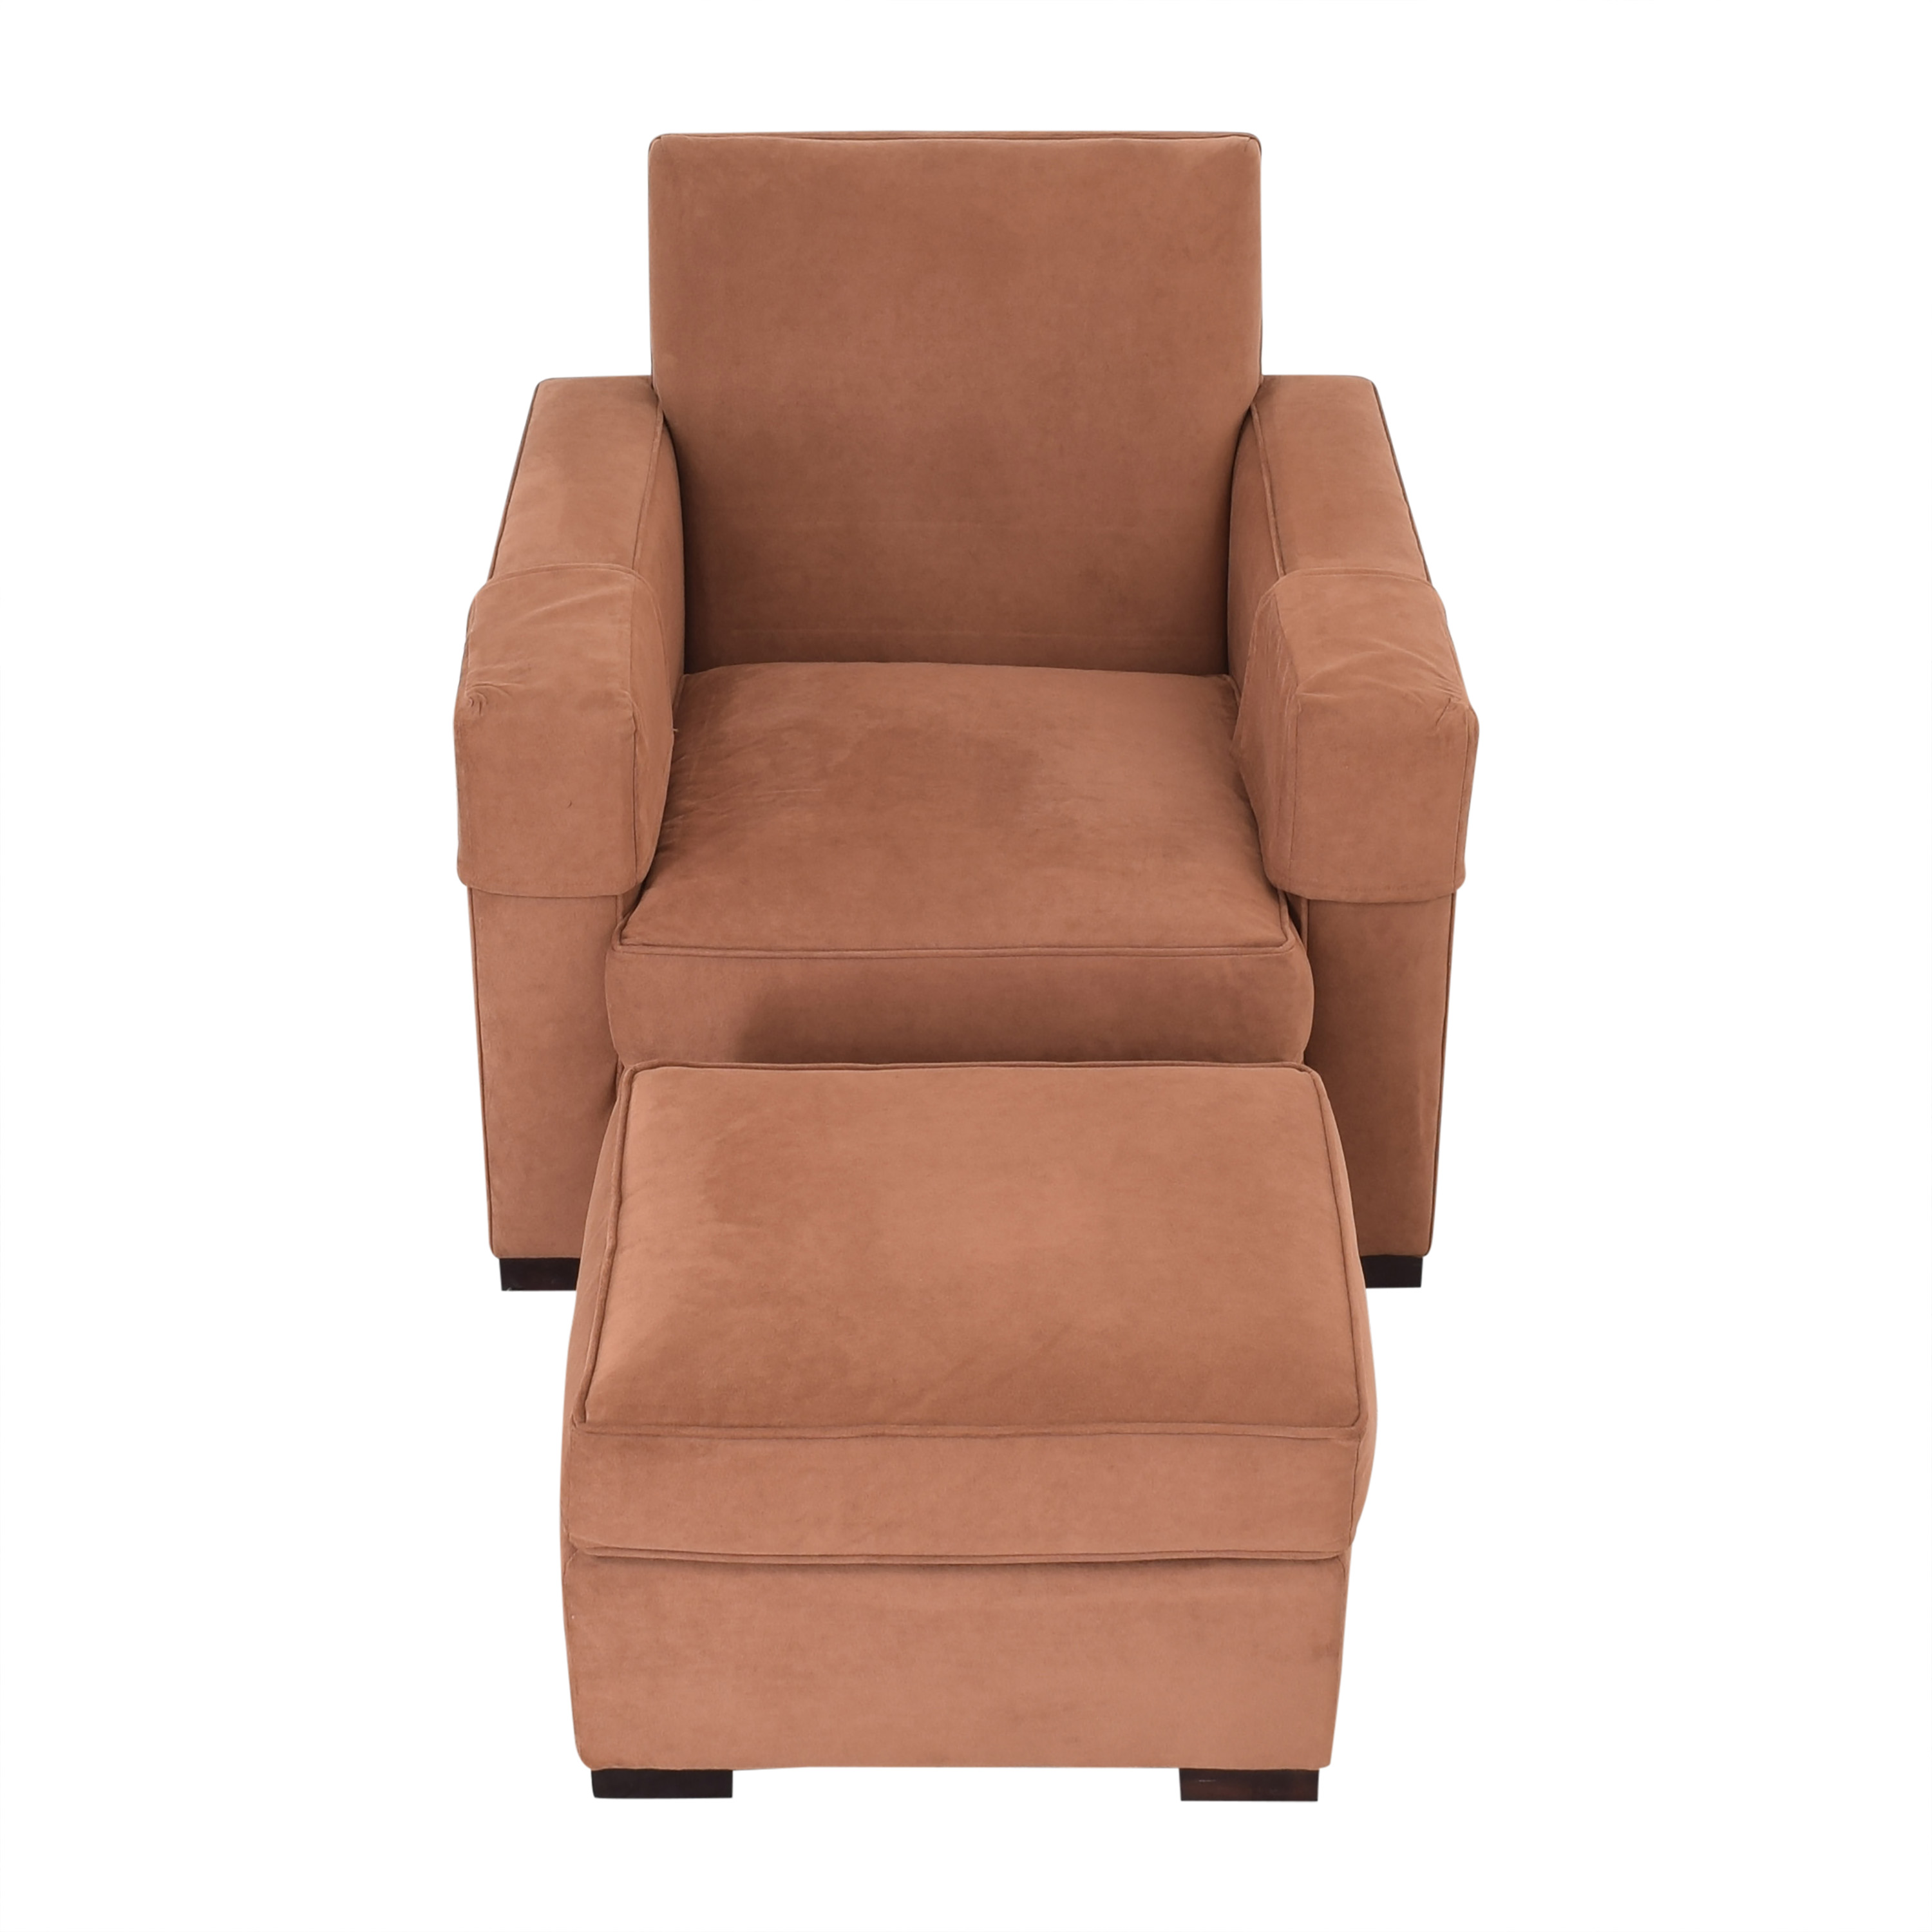 Hickory Chair Hickory Chair Ultra Suede Chair and Ottoman Peach